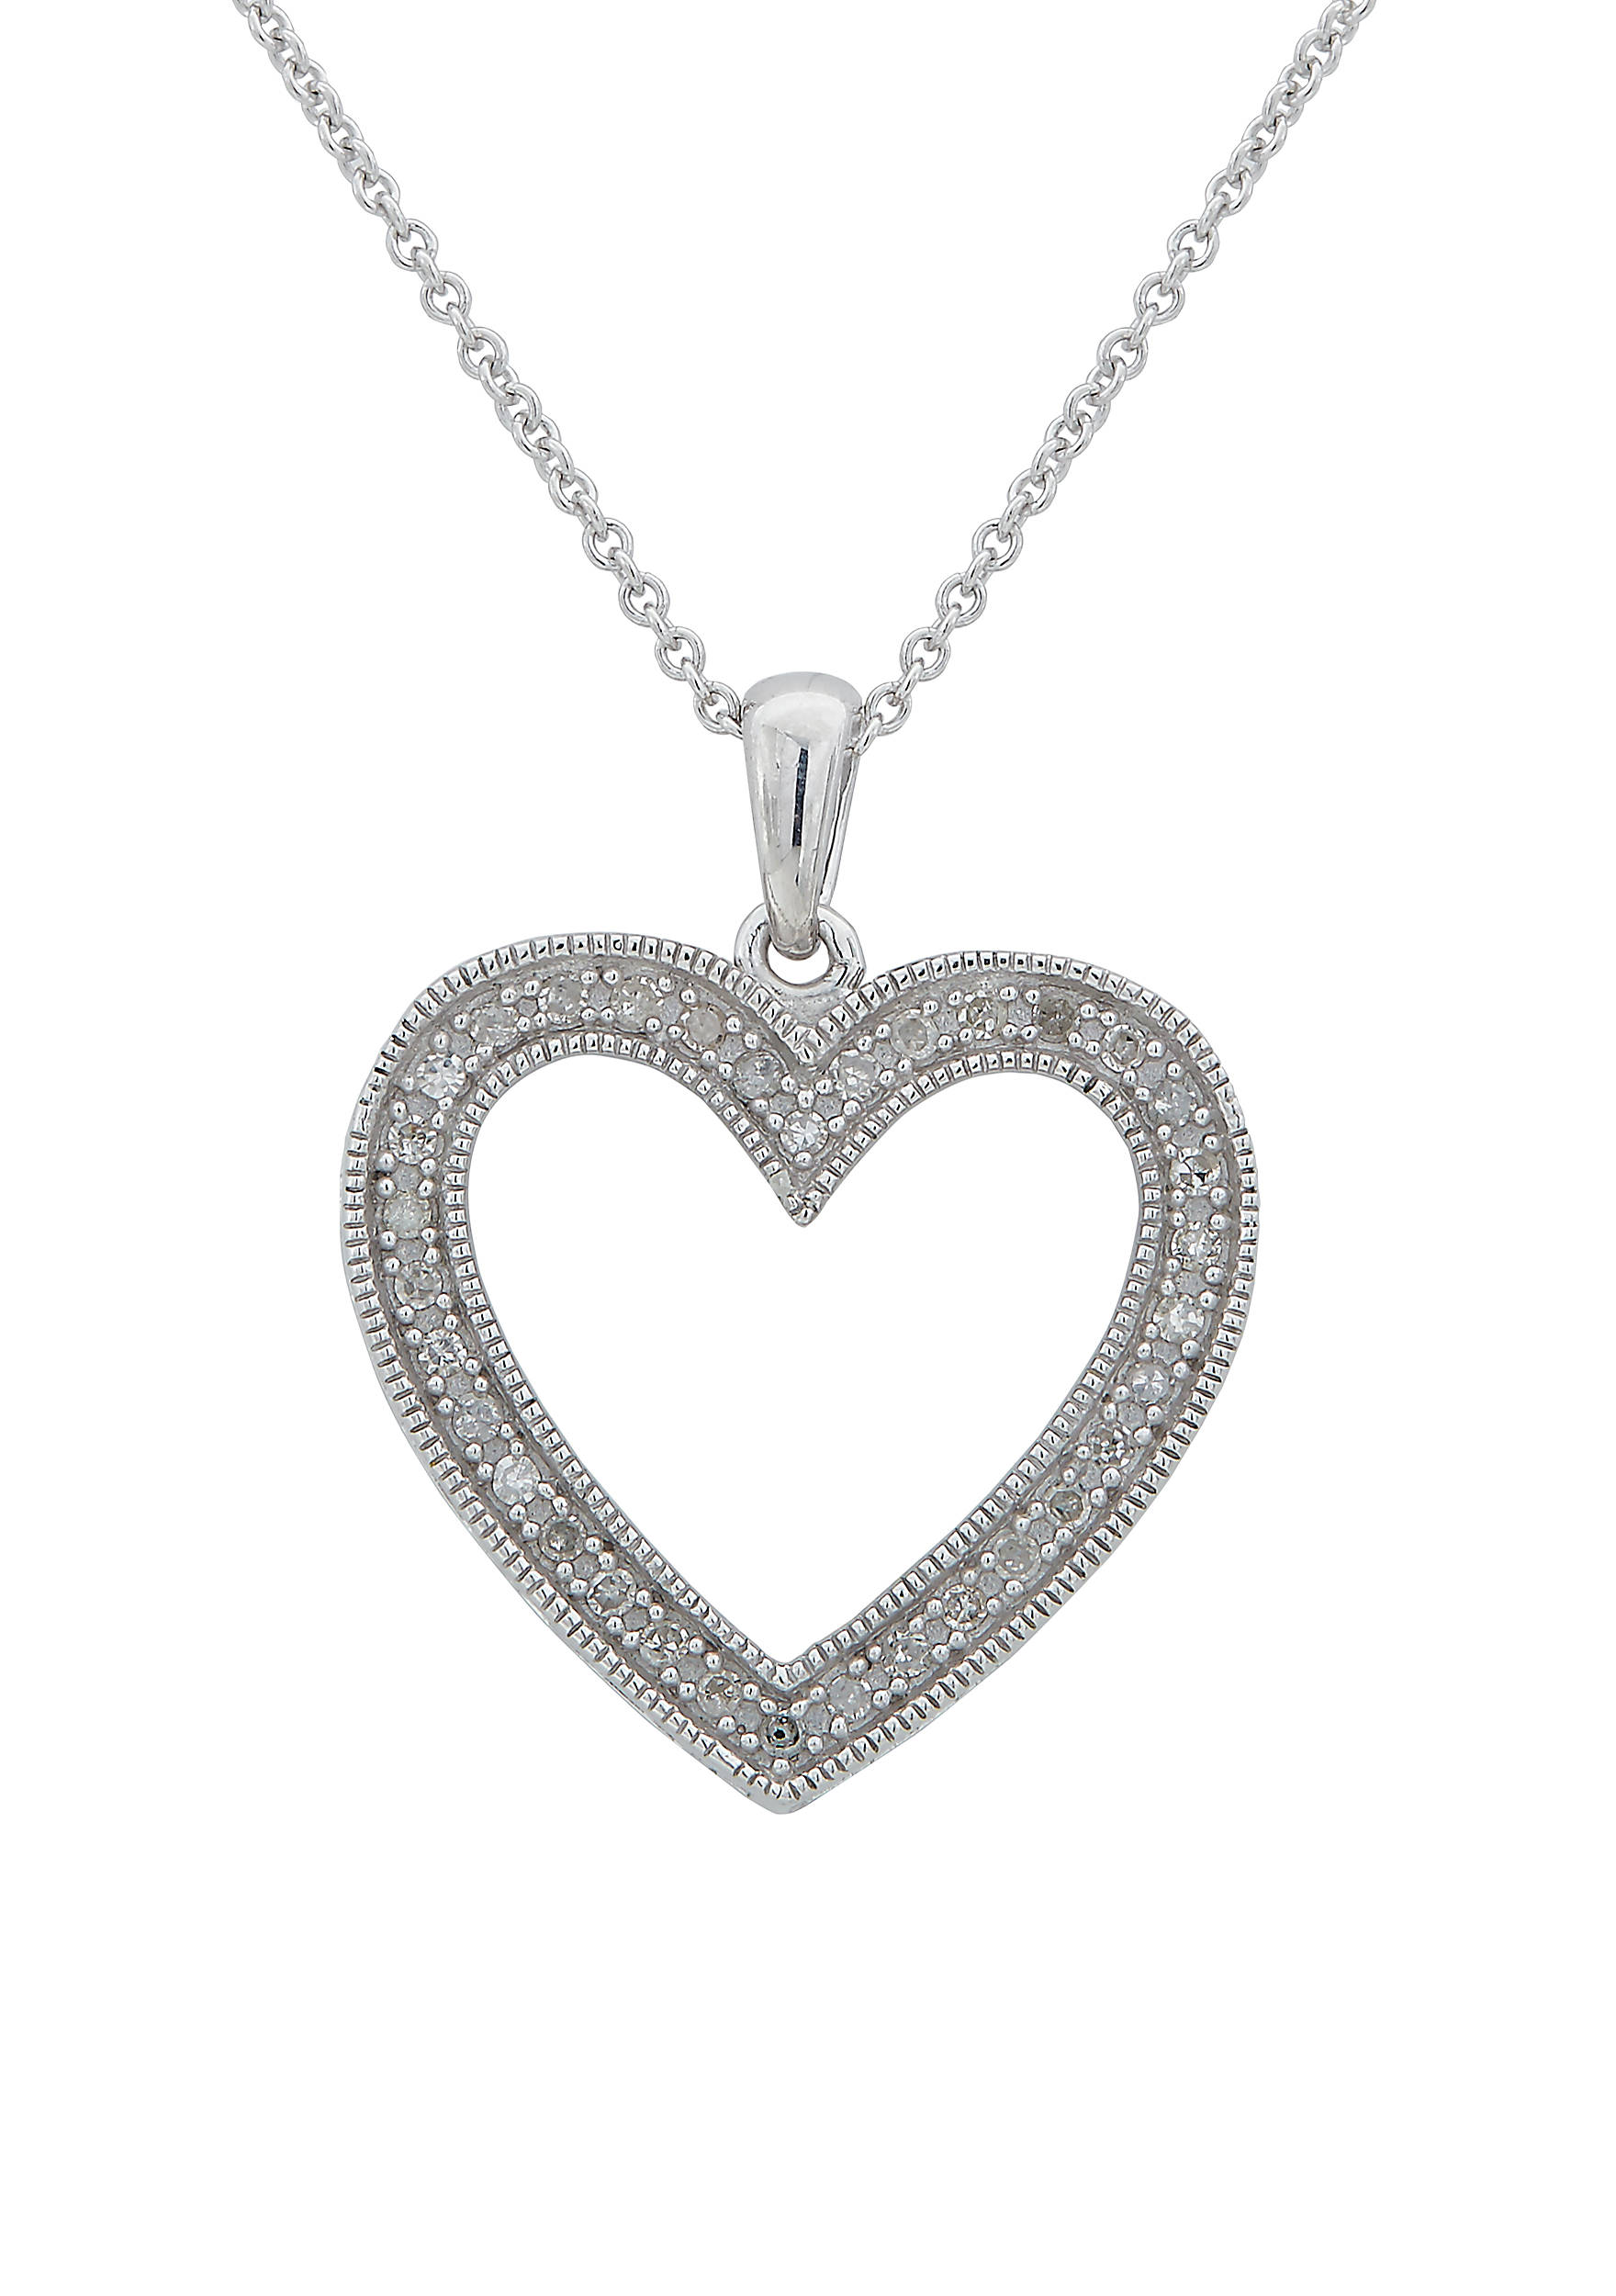 Belk co sterling silver diamond heart pendant necklace belk sterling silver diamond heart pendant necklace 5400453sjx44372fch images mozeypictures Choice Image